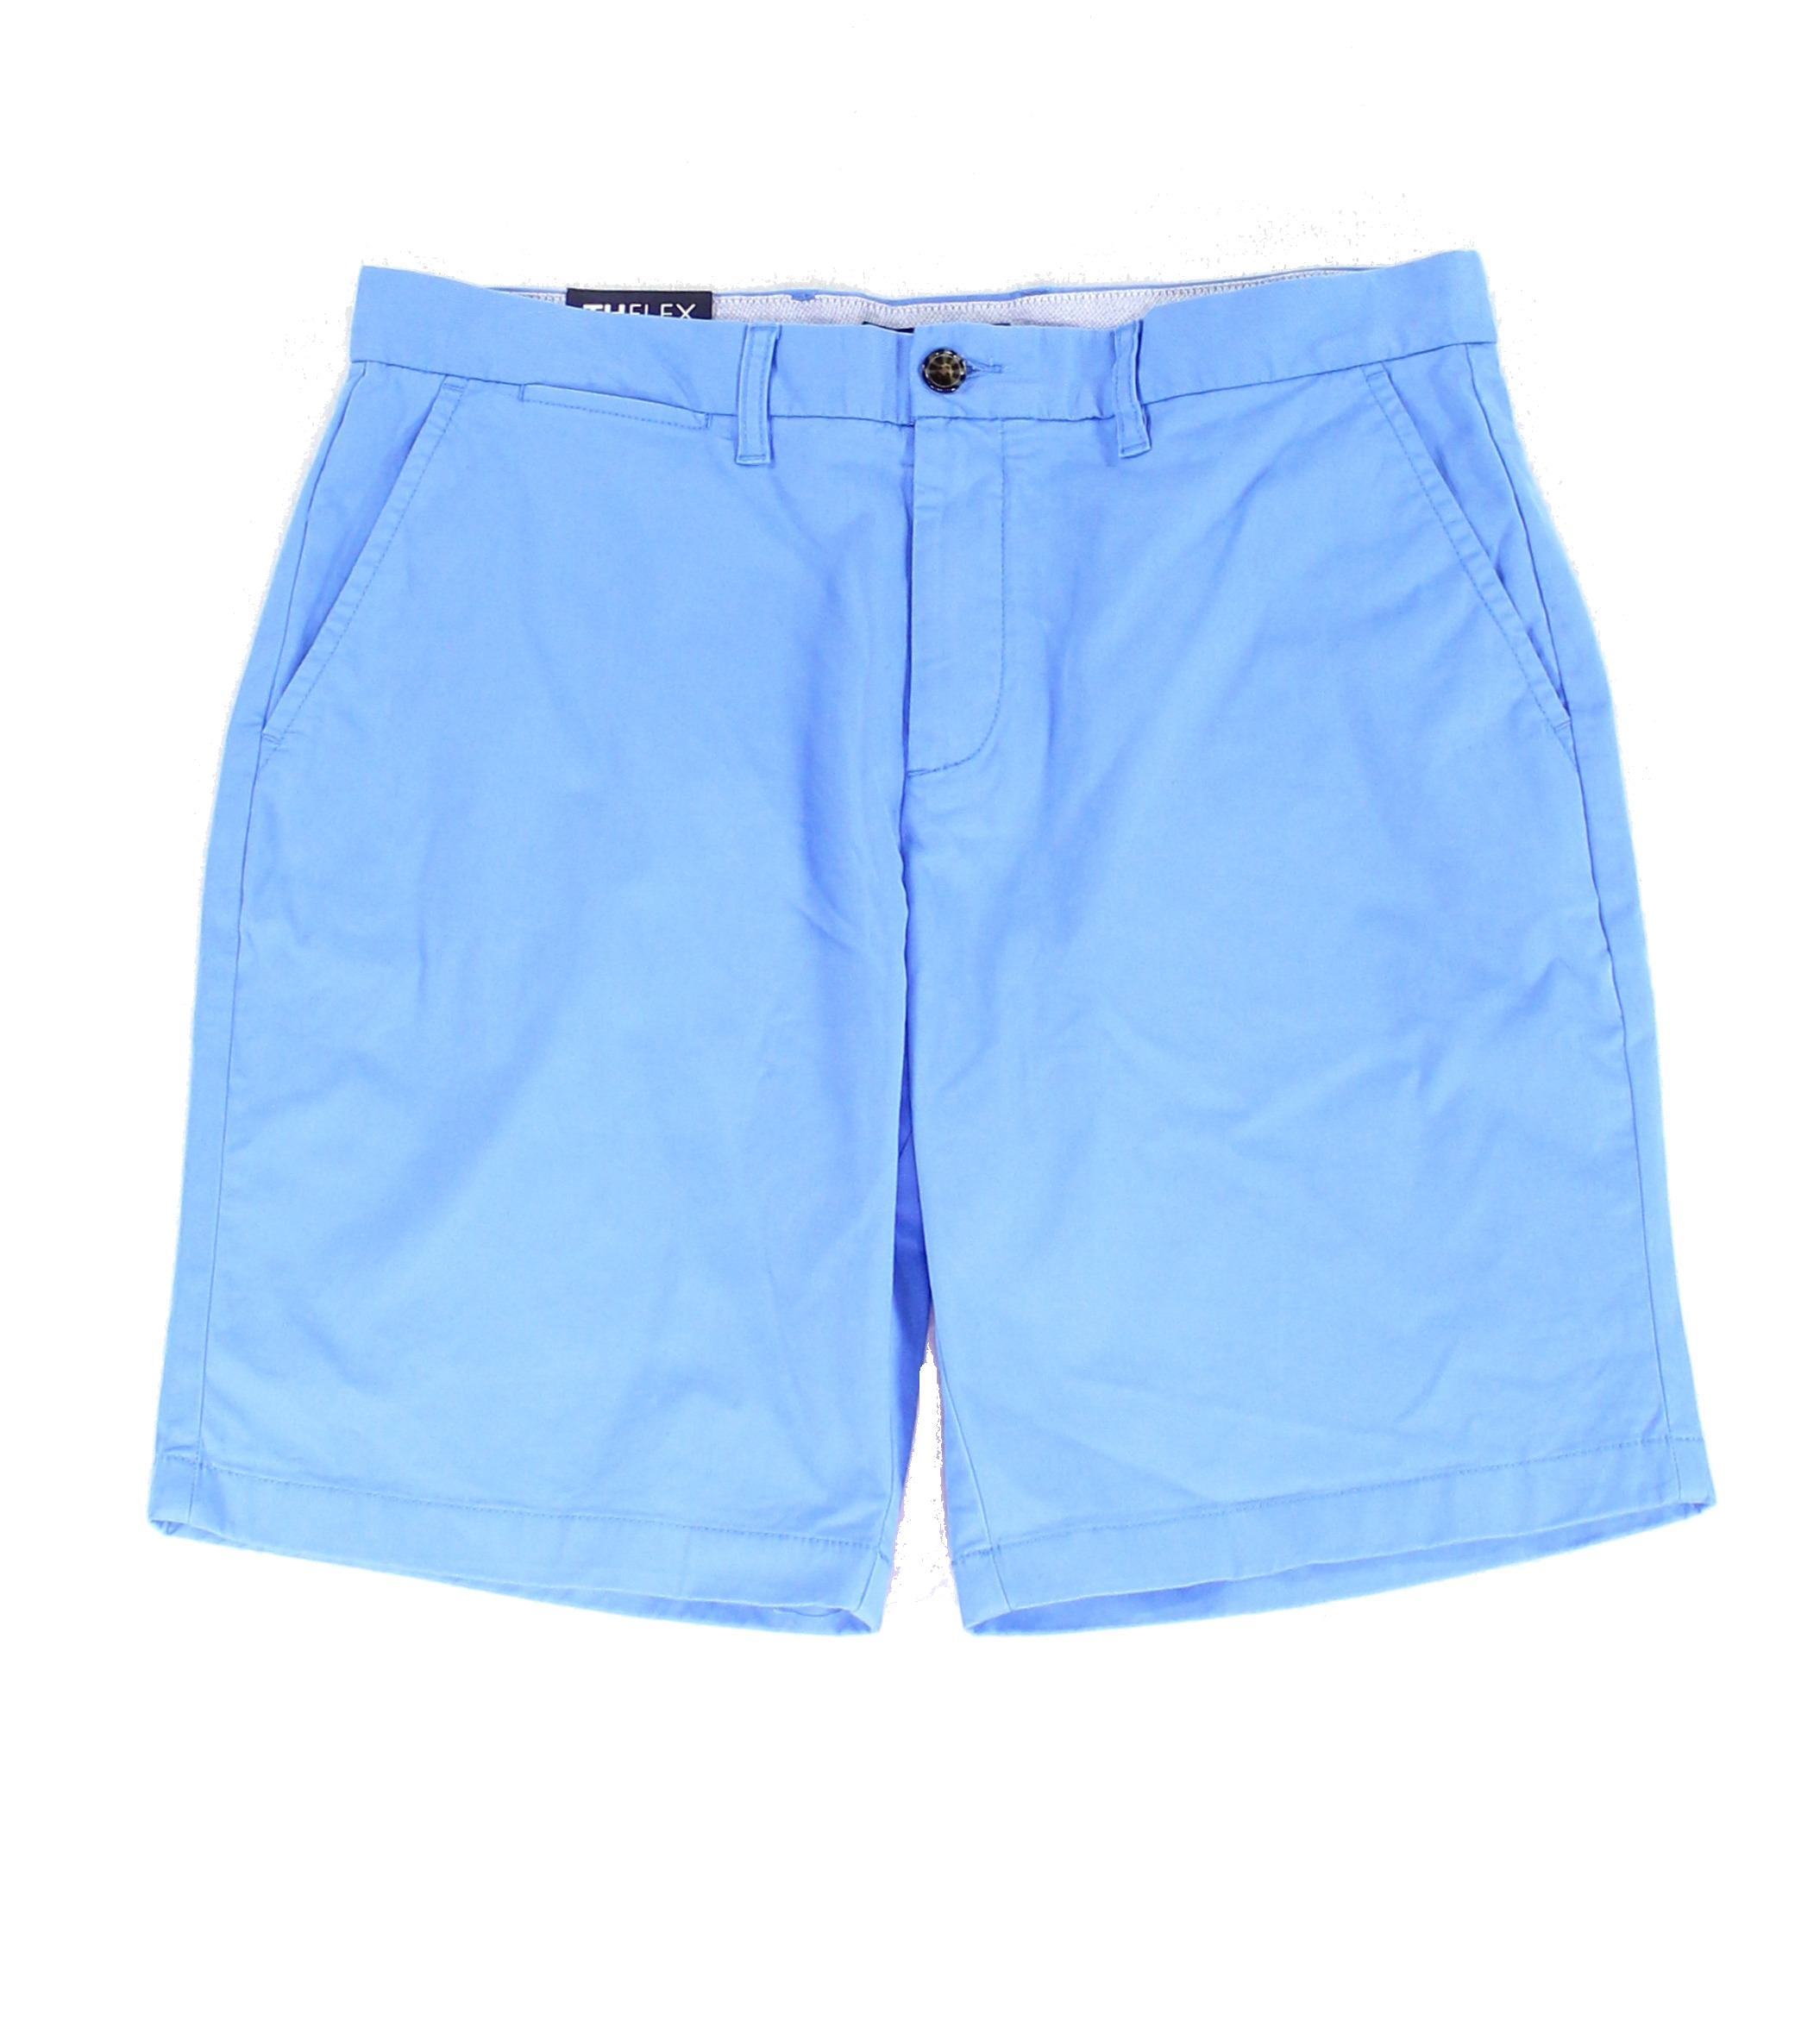 New-Tommy-Hilfiger-Blue-Mens-Size-42-The-Flex-Flat-Front-Chinos-Shorts-49-336